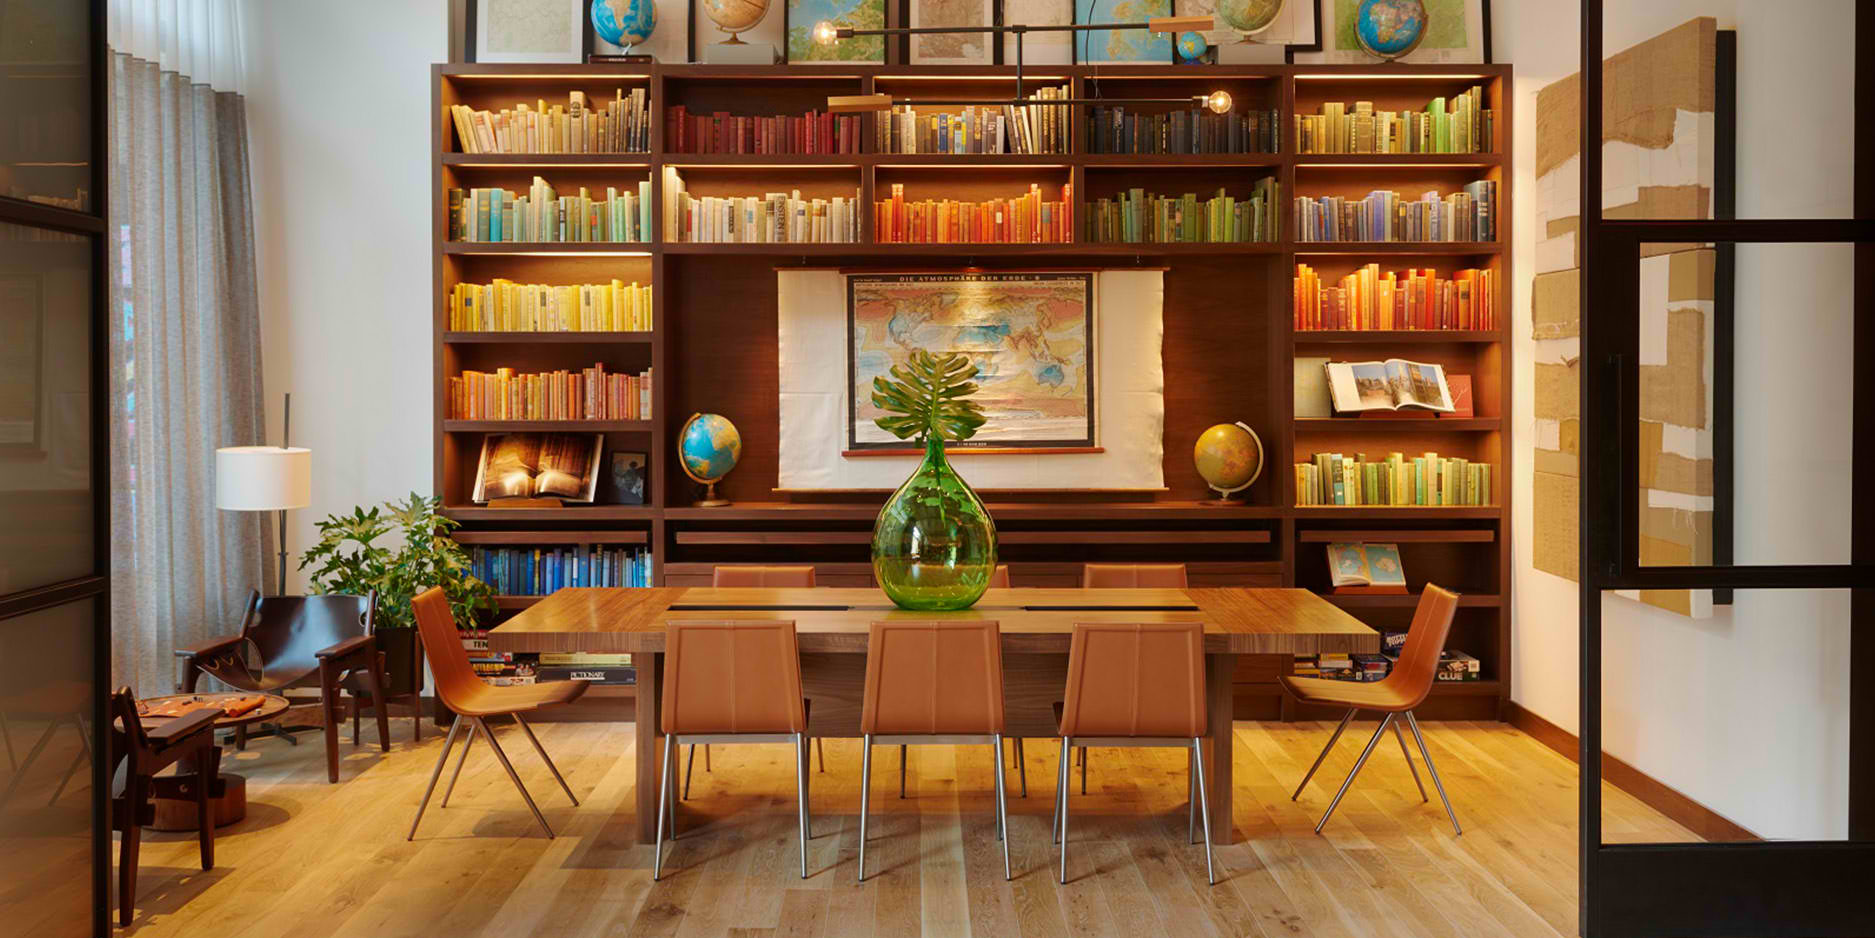 Arlo NoMad Studio with long wooden table centered in room and plan and large shelf in the back filled with colorful books and globes